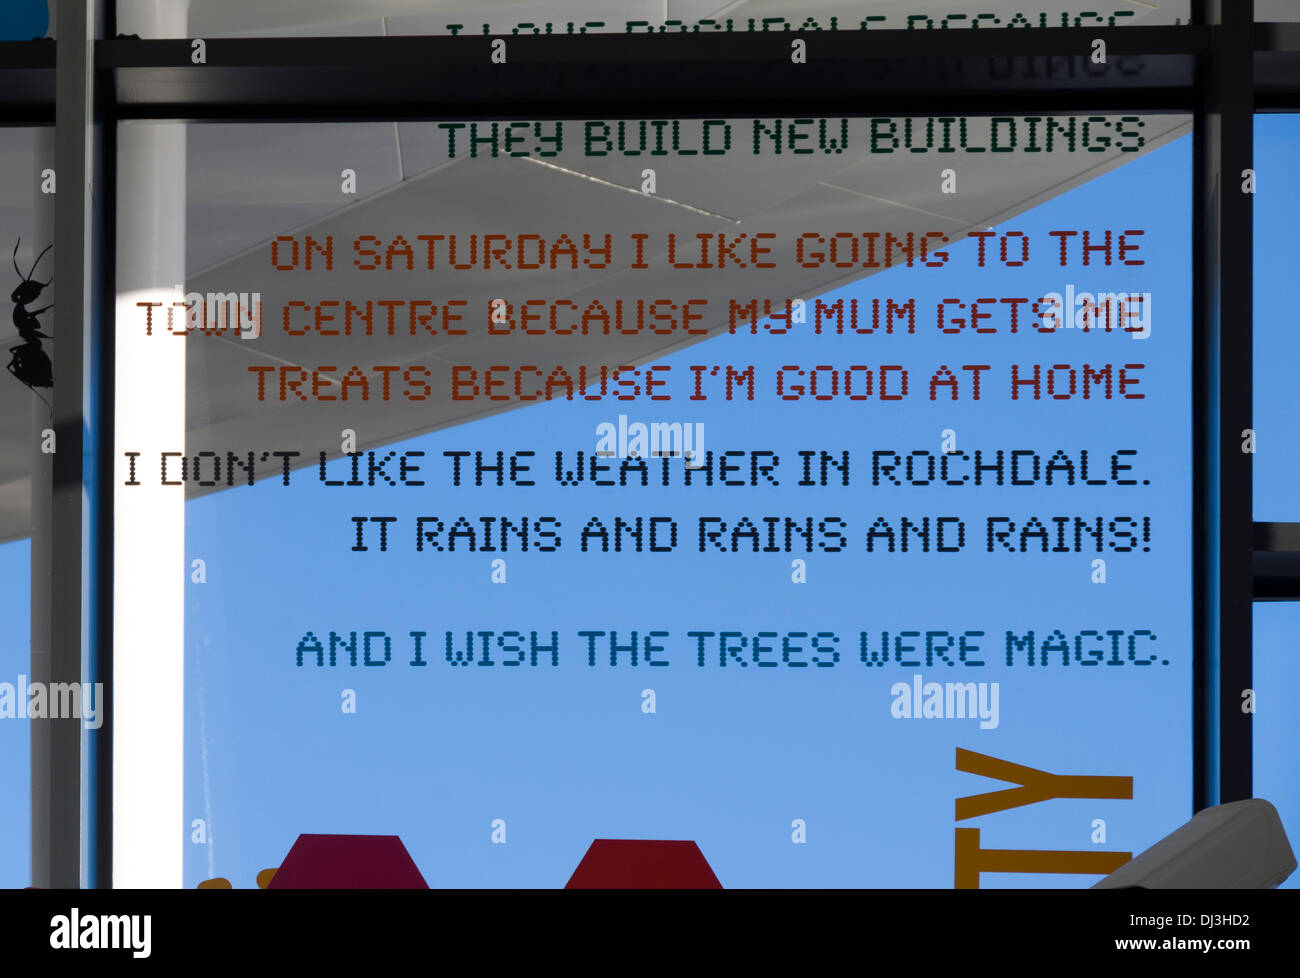 Childrens Quotes On A Window Transport Interchange Building Stock